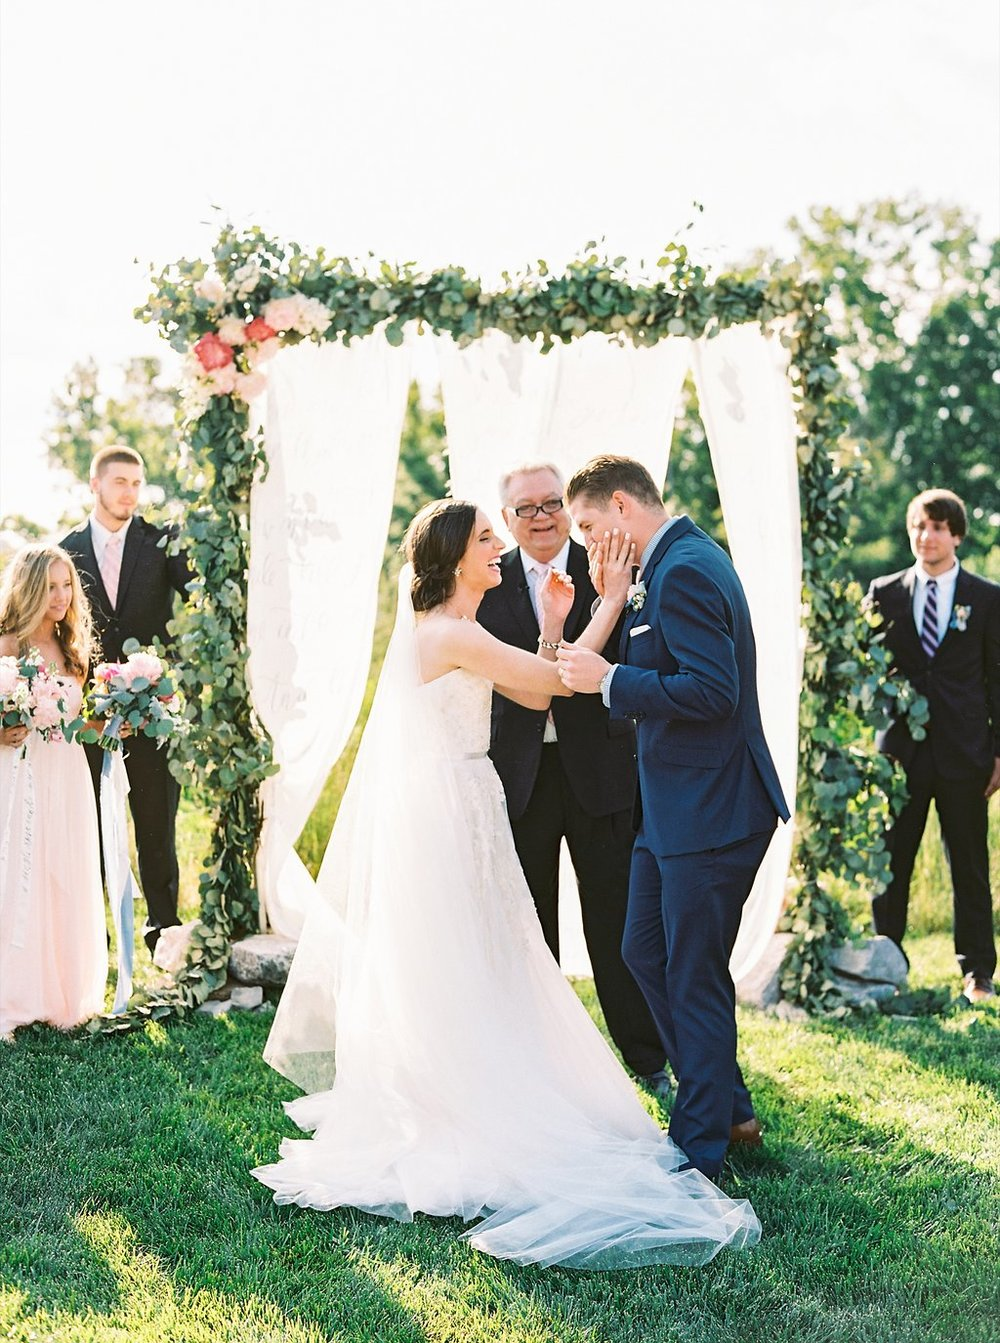 Outdoor Southern Wedding Ceremony | Blush and Navy Wedding with Fuchsia, French Blue and Gold Accents First Kiss | Simply Jessica Marie's Southern Wedding at Gettysvue Golf Course and Country Club in Knoxville Tennessee | Photo by Perry Vaile Photography